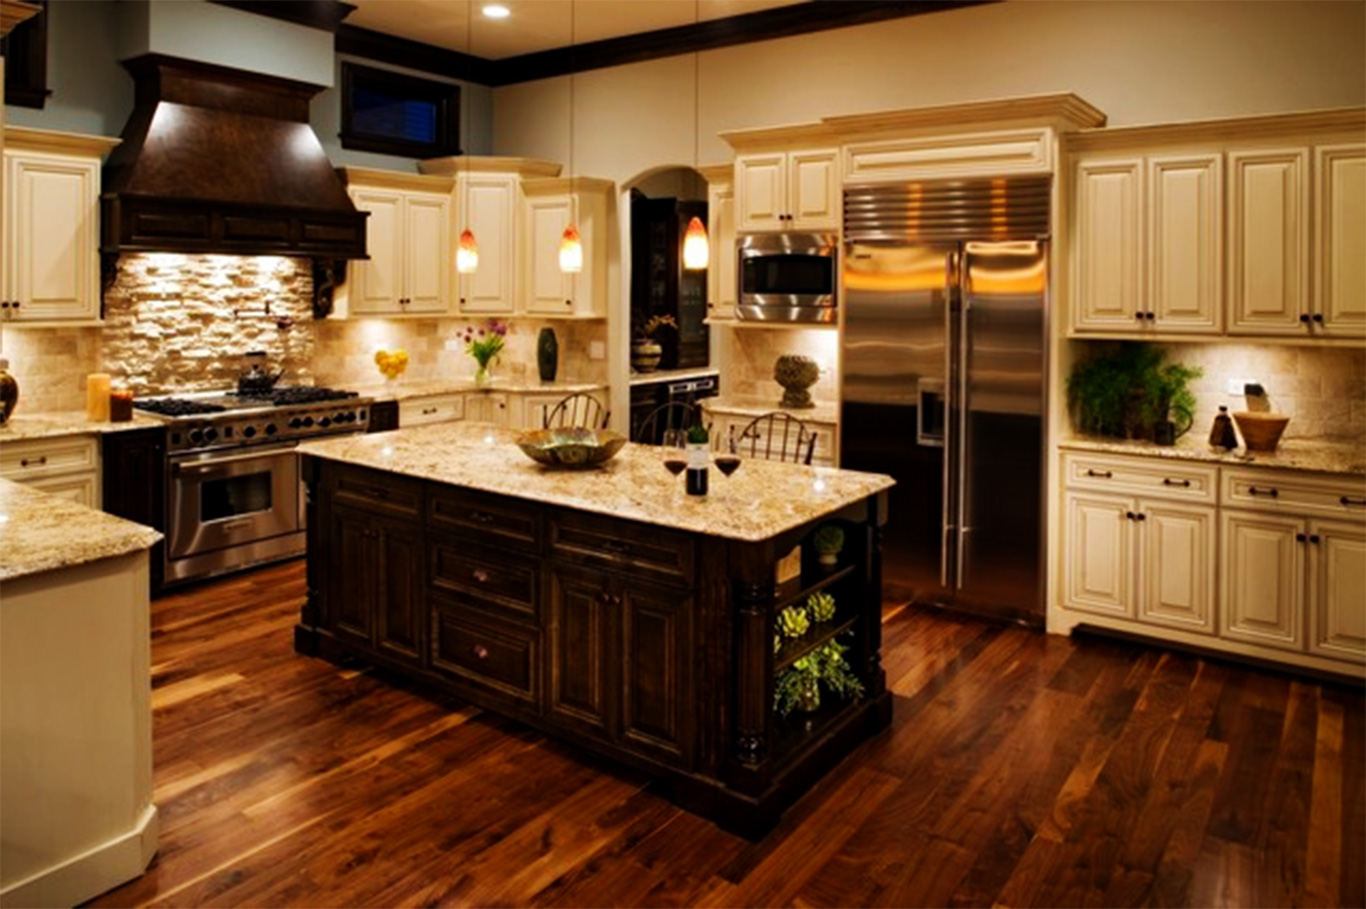 Kitchen Design Pictures Remodel Decor And Ideas ~ Awesome type of kitchen design ideas